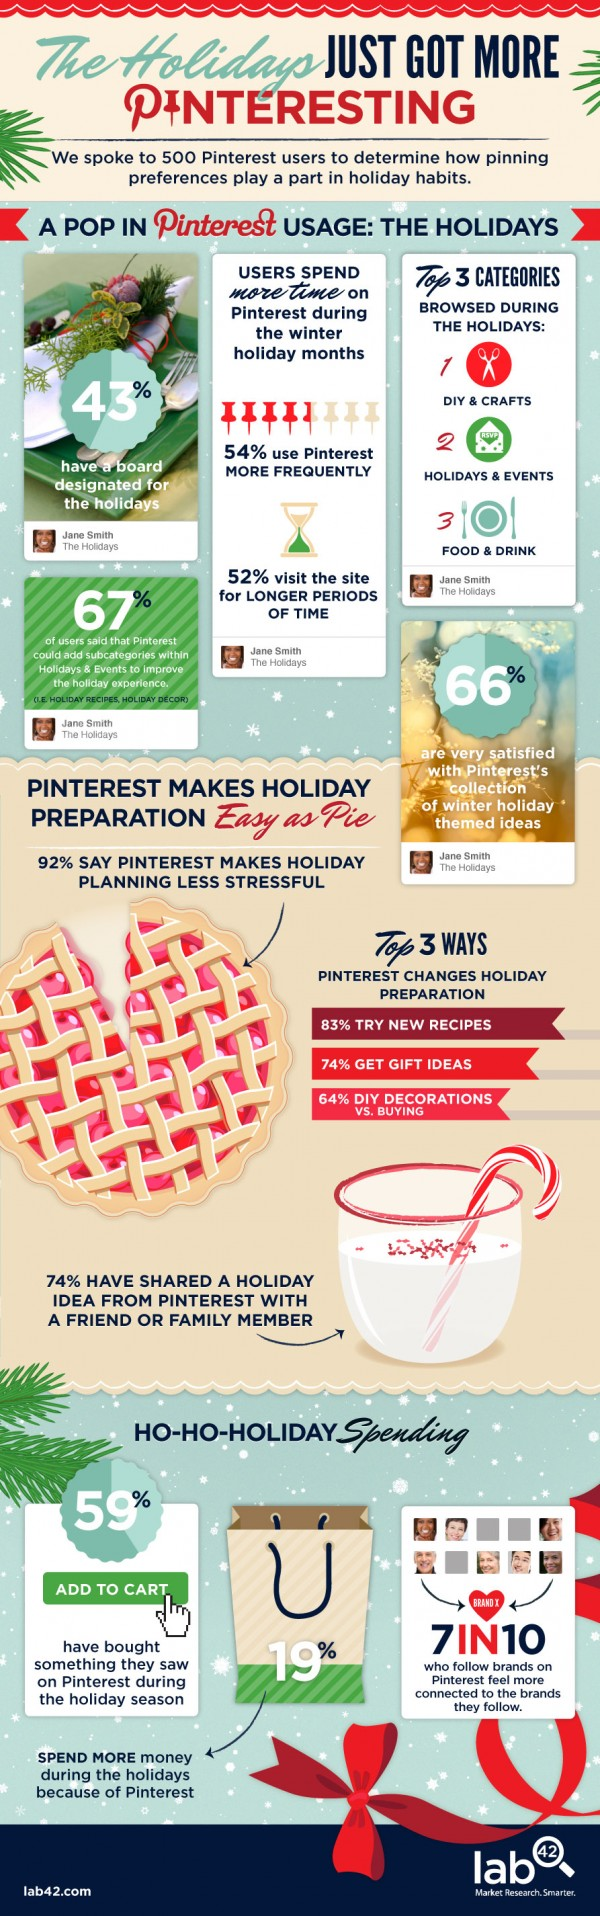 The Holidays Just Got More Pinteresting